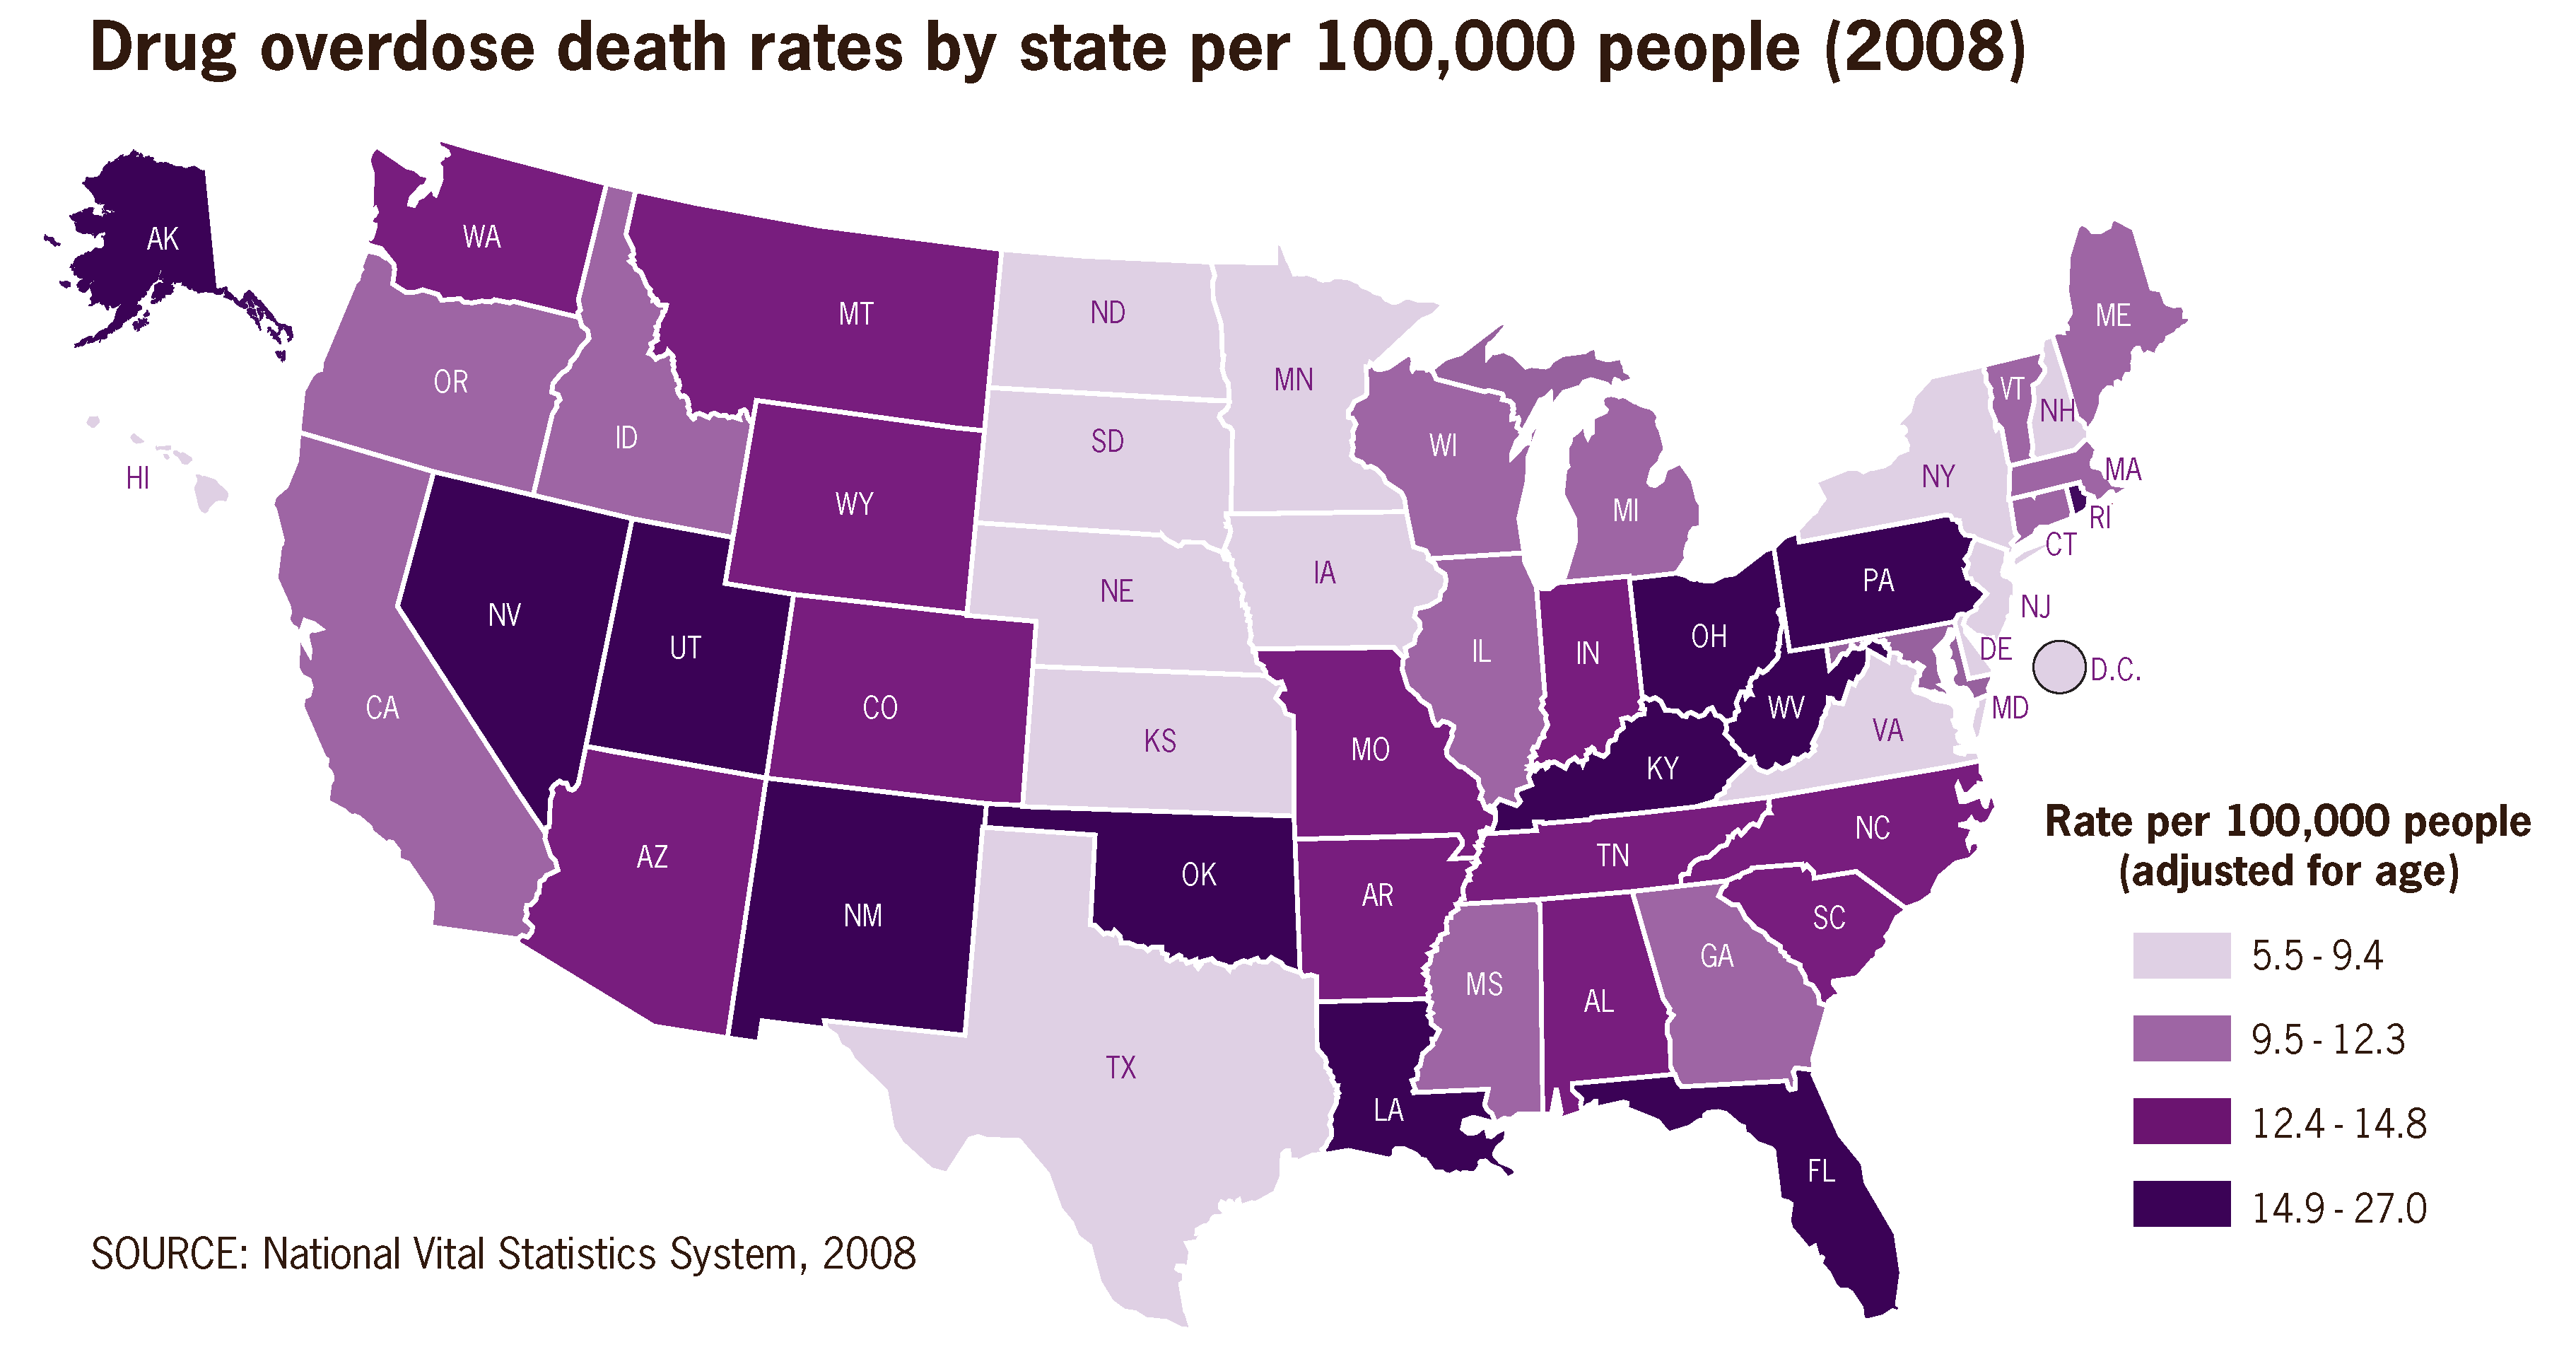 Drug overdose death rates by state per 100,000 people 2008 US.png